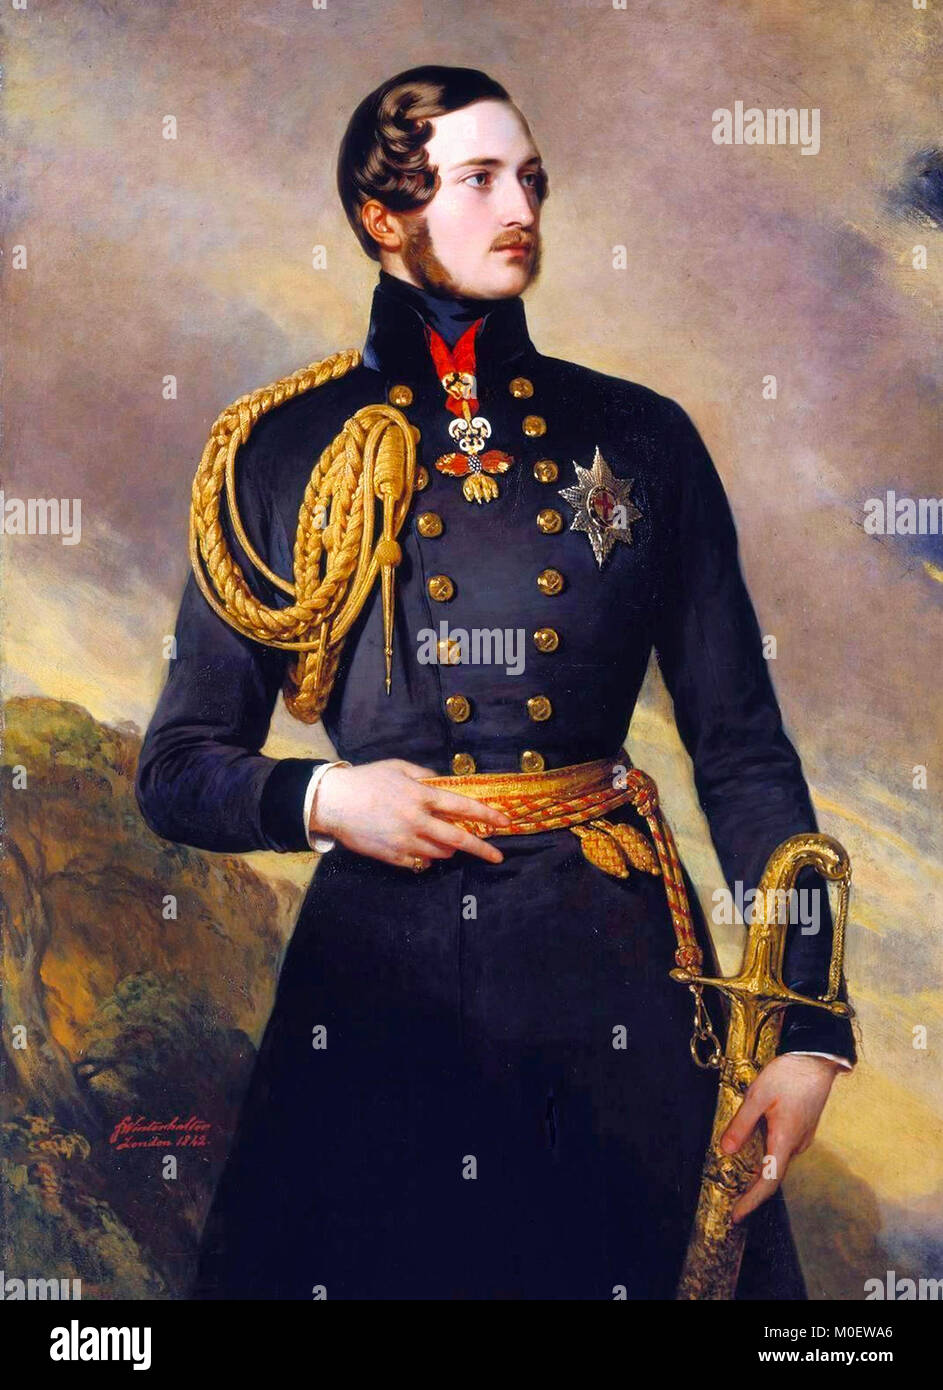 Prince Albert of Saxe-Coburg and Gotha wearing the Golden Fleece, painted by Franz Xaver Winterhalter in 1842. - Stock Image